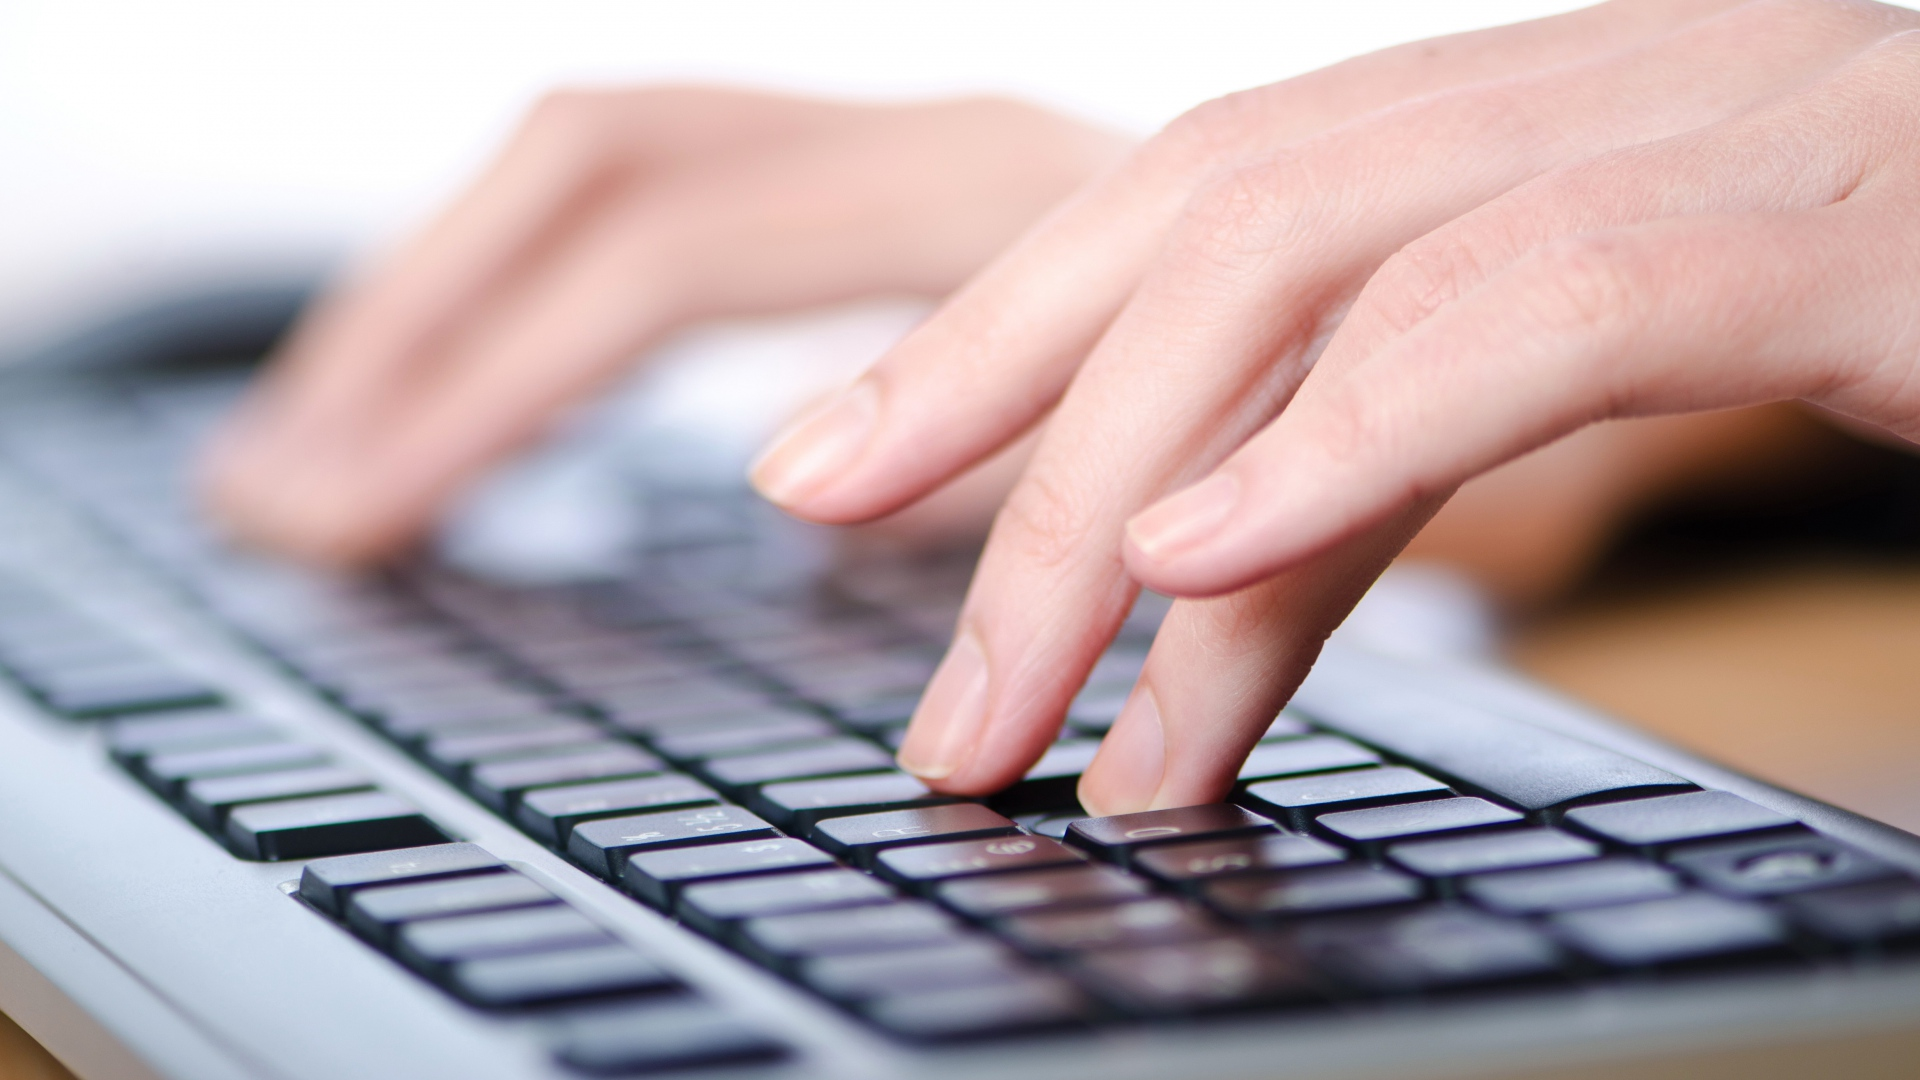 complete Data Entry Related Tasks Efficiently and Reliably